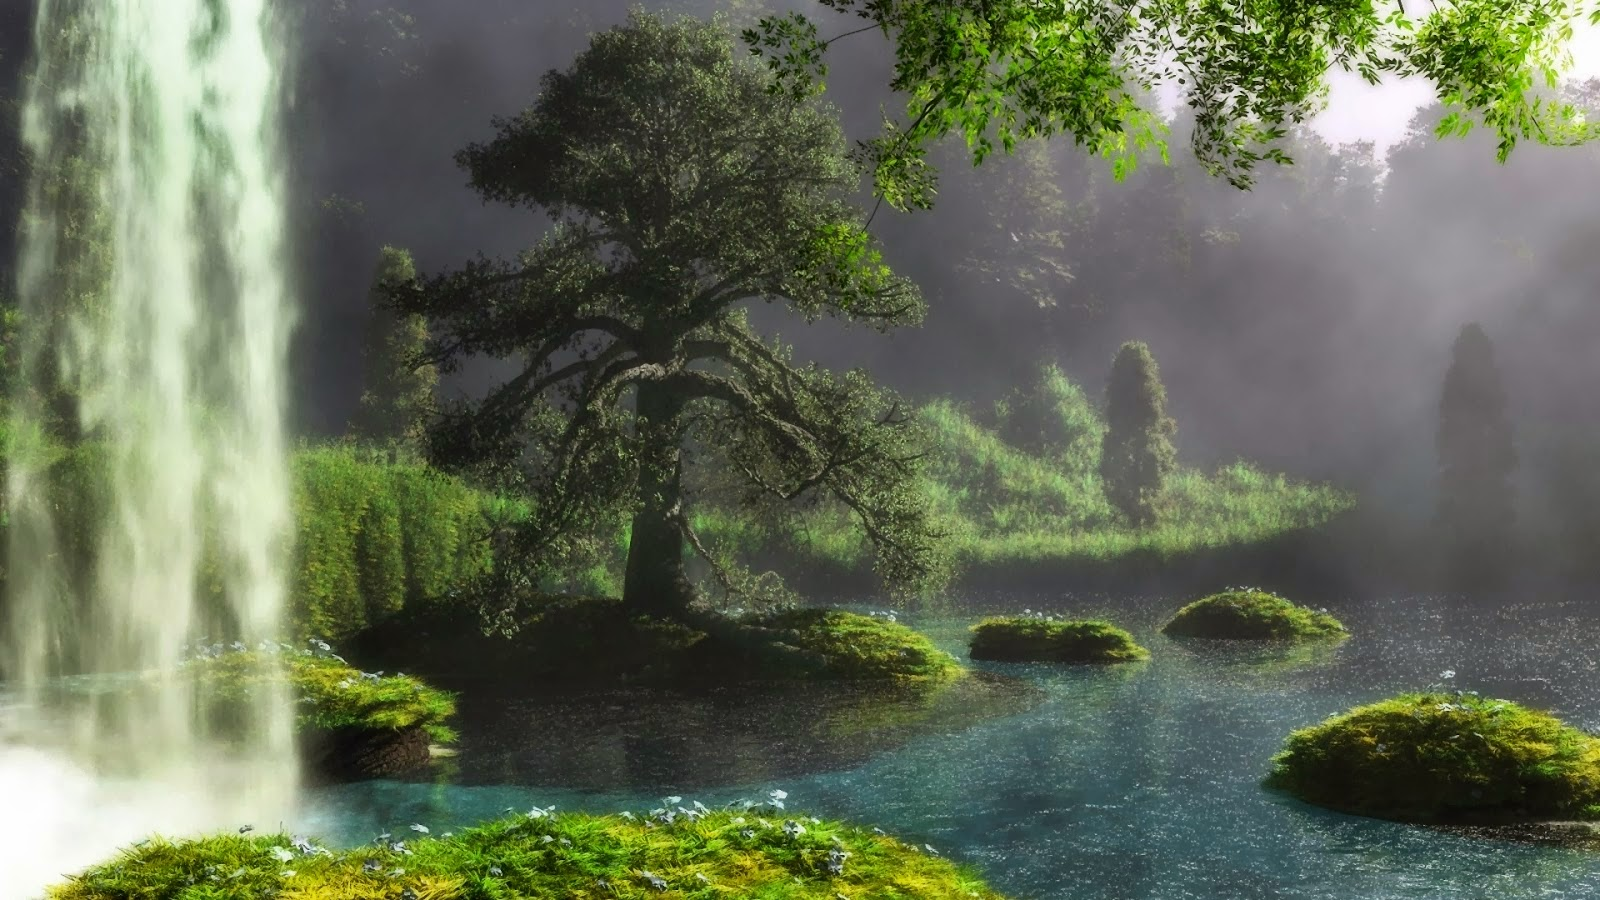 Global pictures gallery 3d nature full hd wallpapers for 3d wallpaper hd for wall